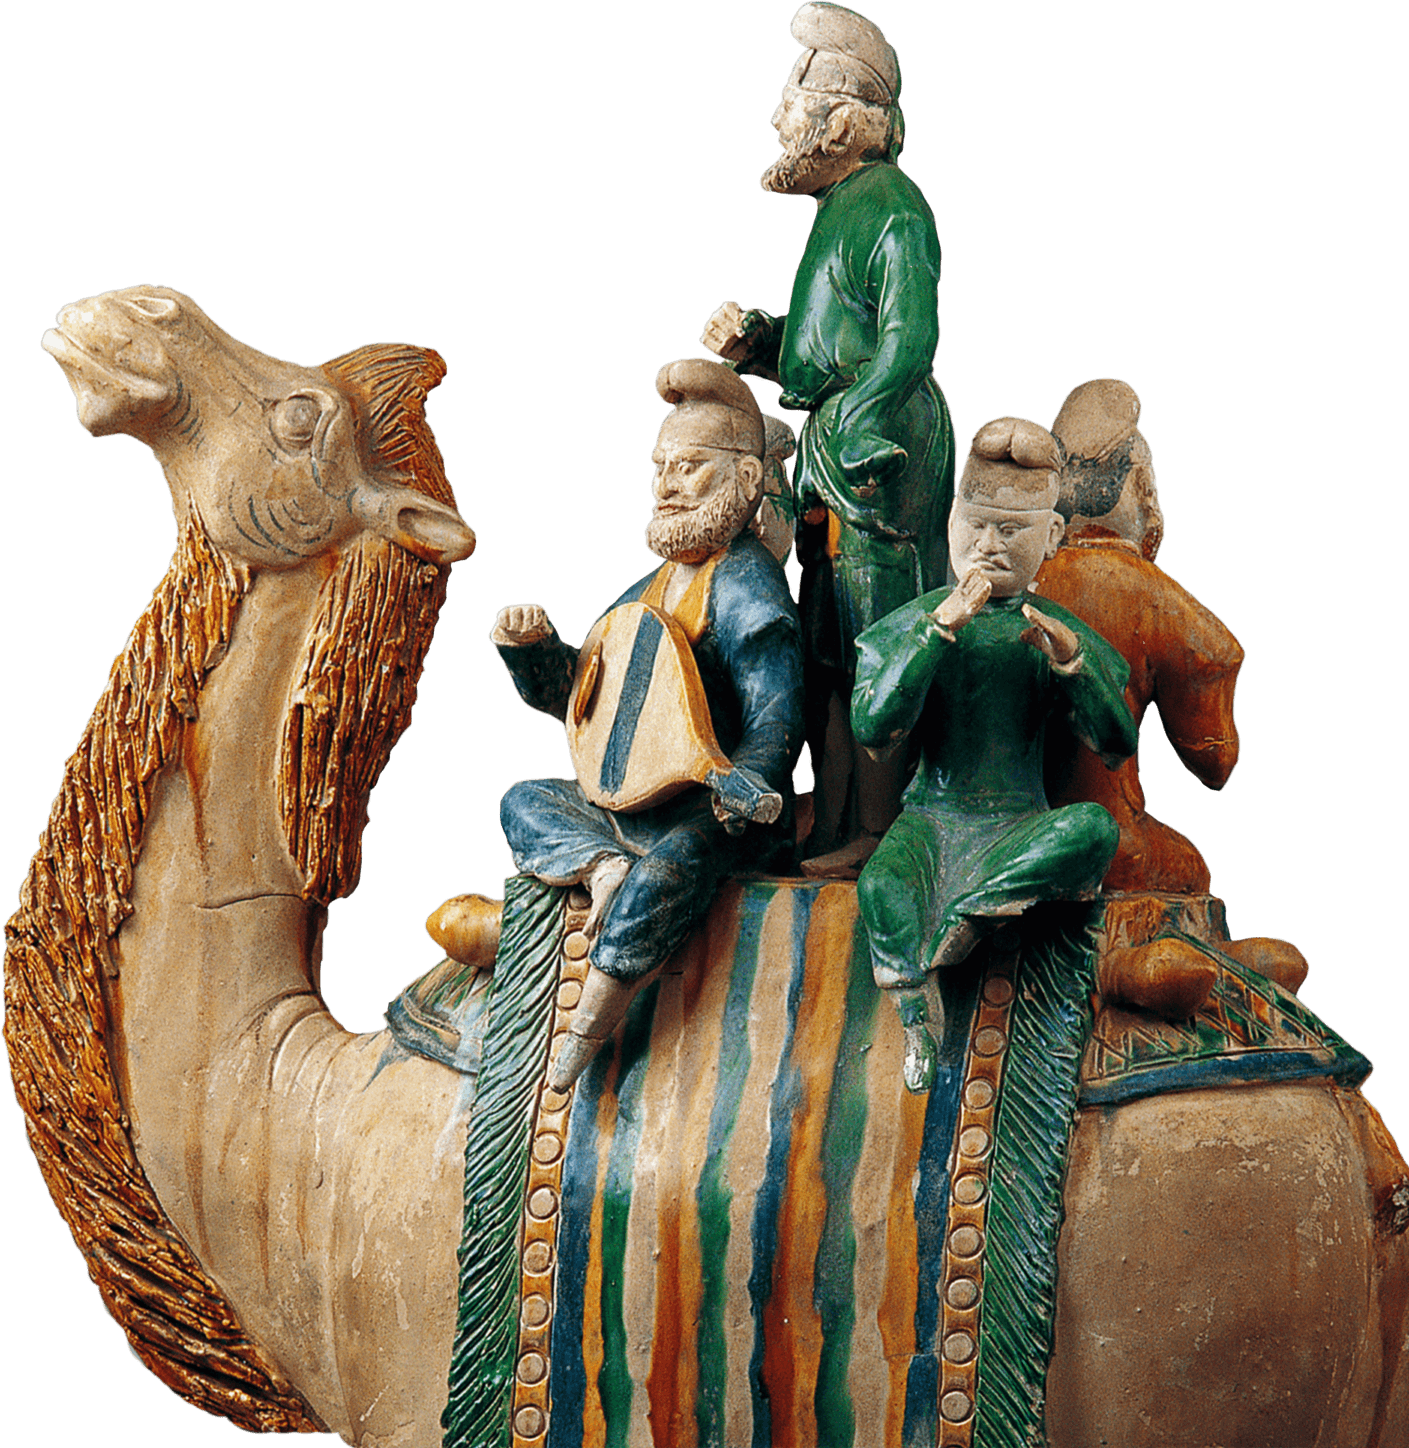 Tomb Figure of a Camel with Musicians